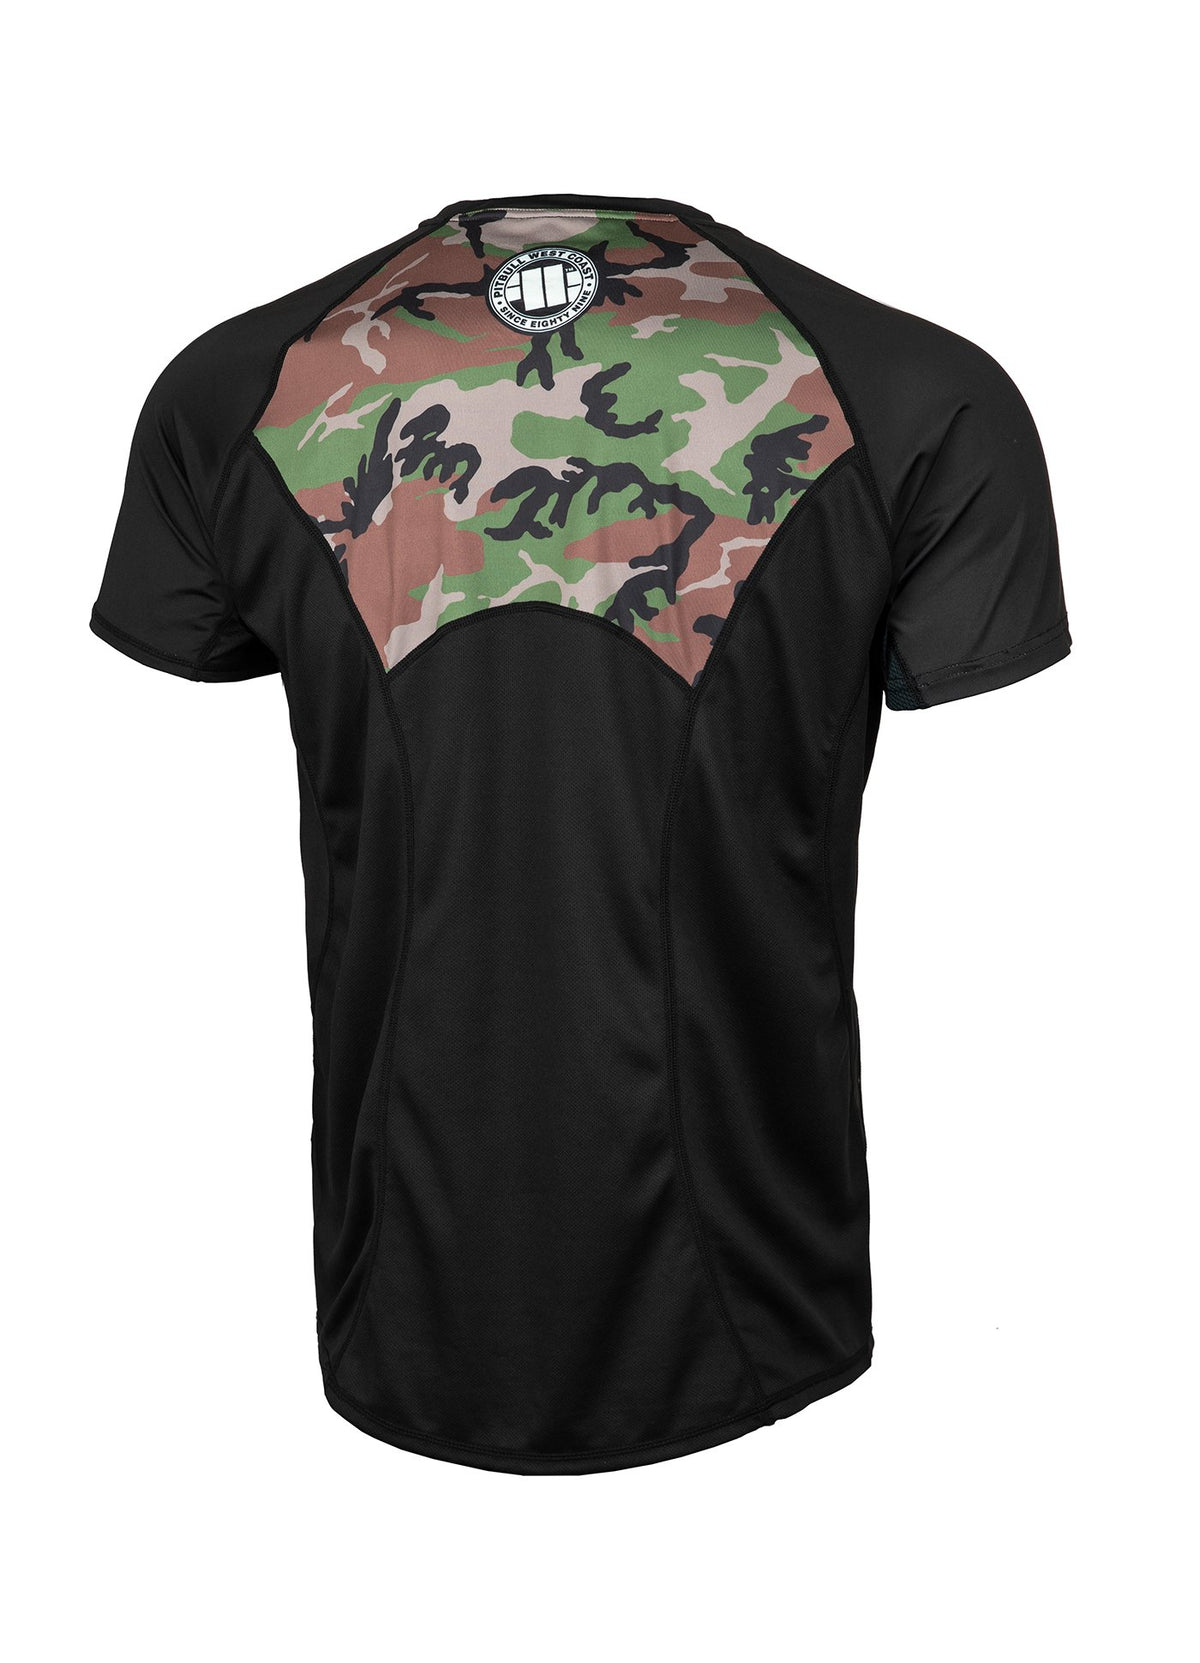 RASHGUARD PERFORMANCE MESH WOODLAND BOXING - Pitbull West Coast U.S.A.